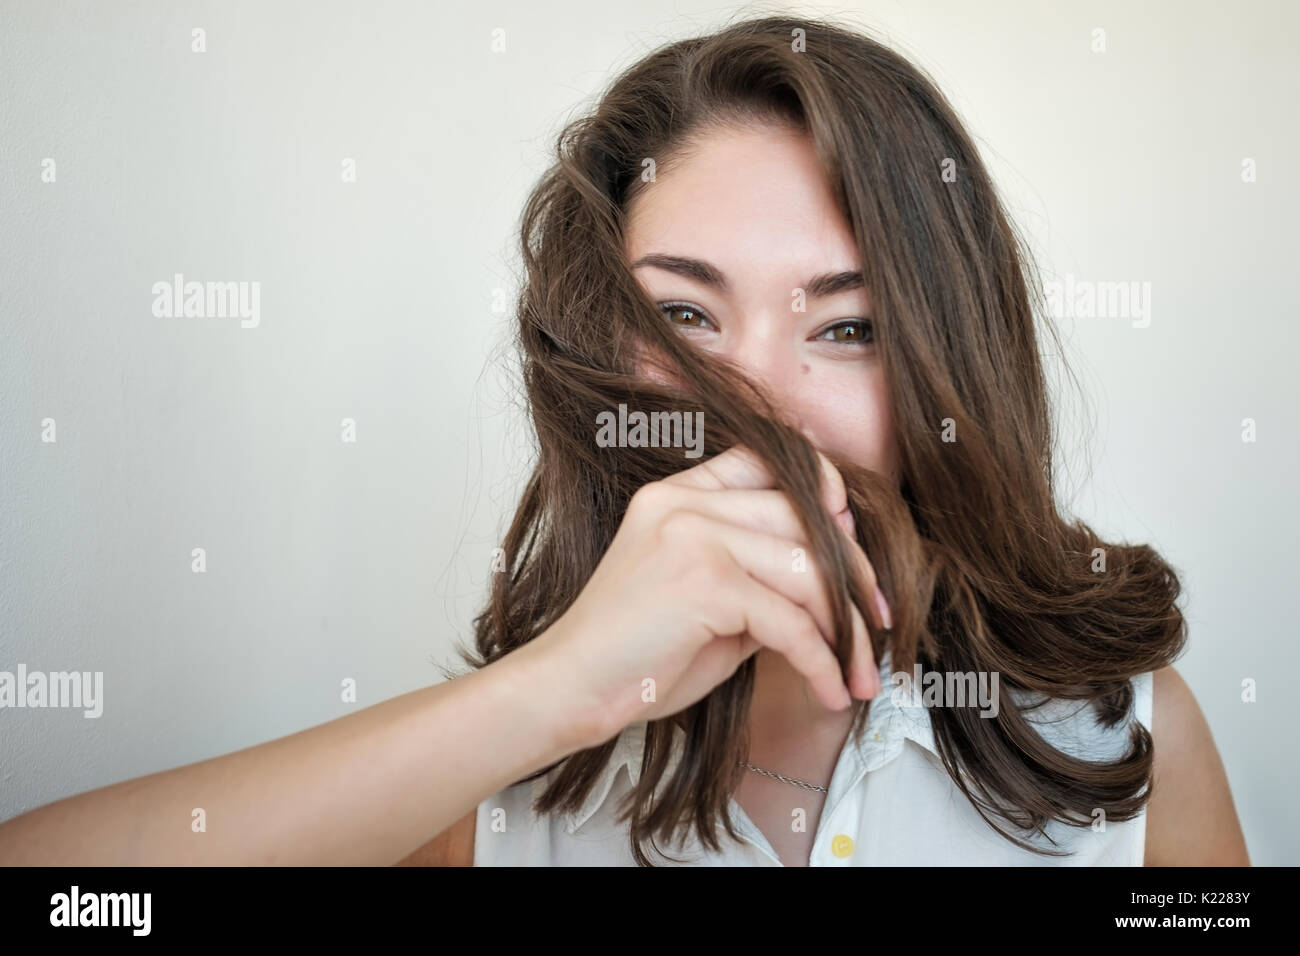 Shy girl hiding her face with hair - Stock Image